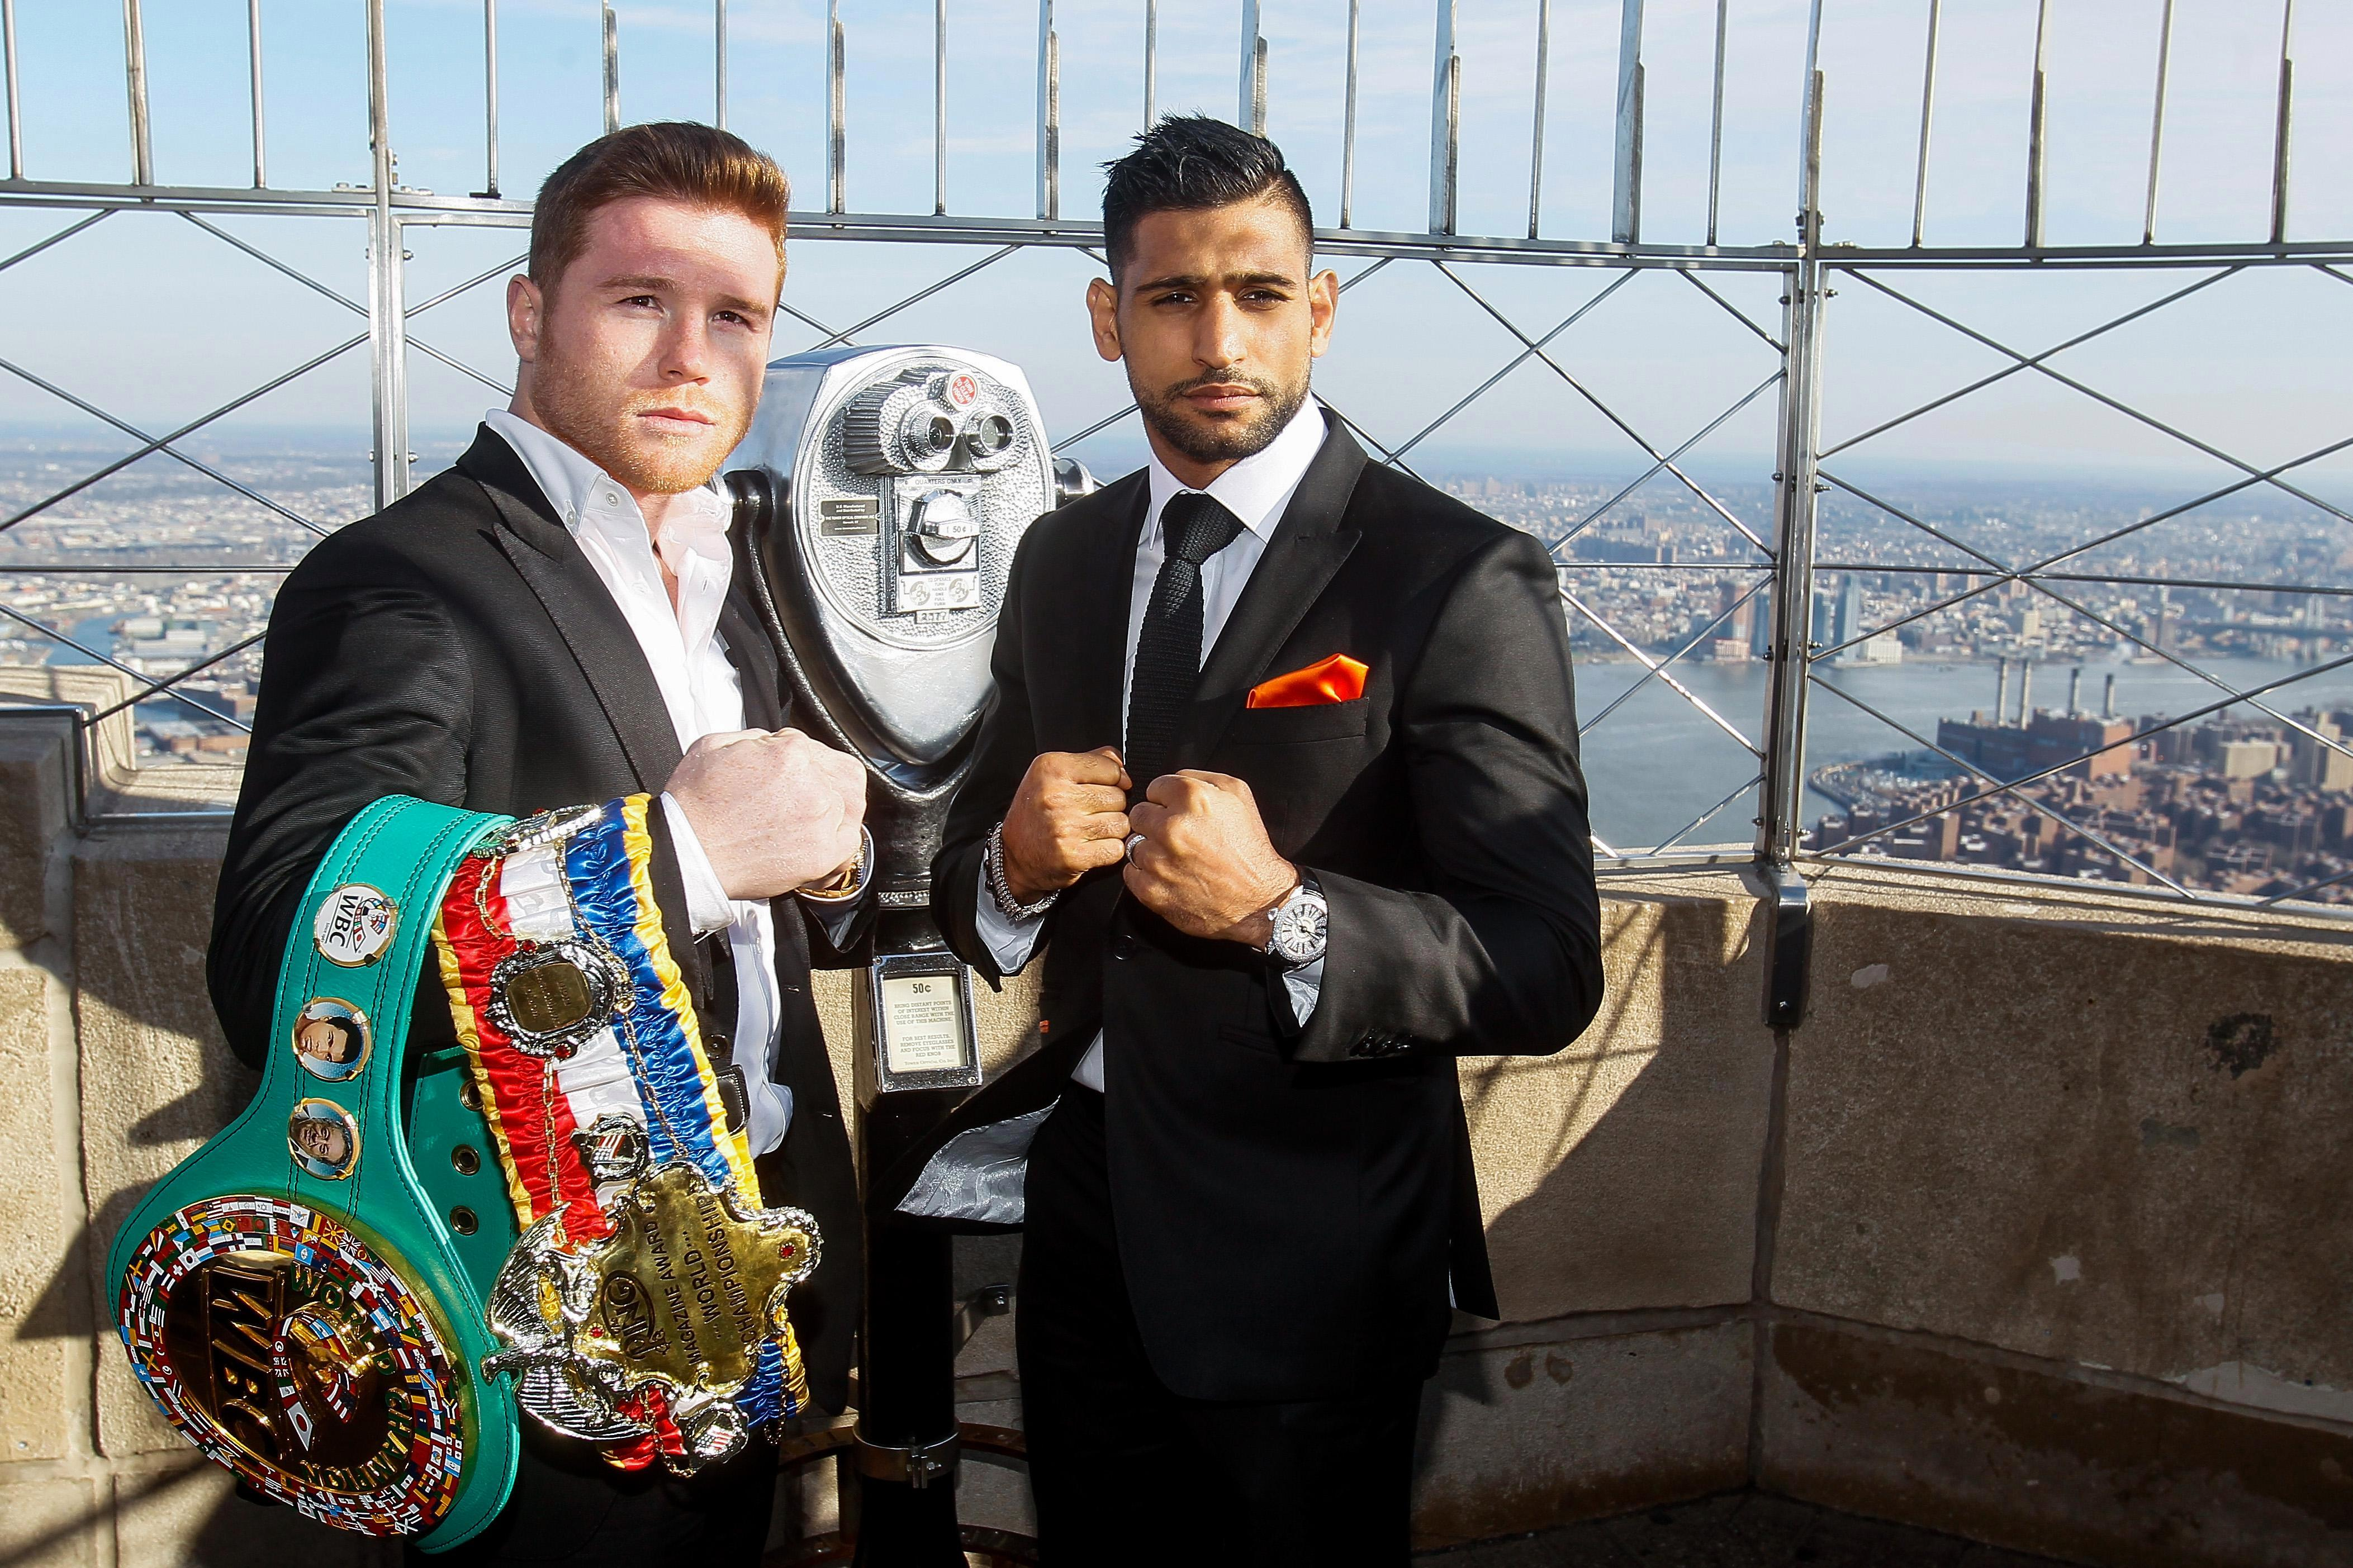 Canelo and Khan met in May 2016